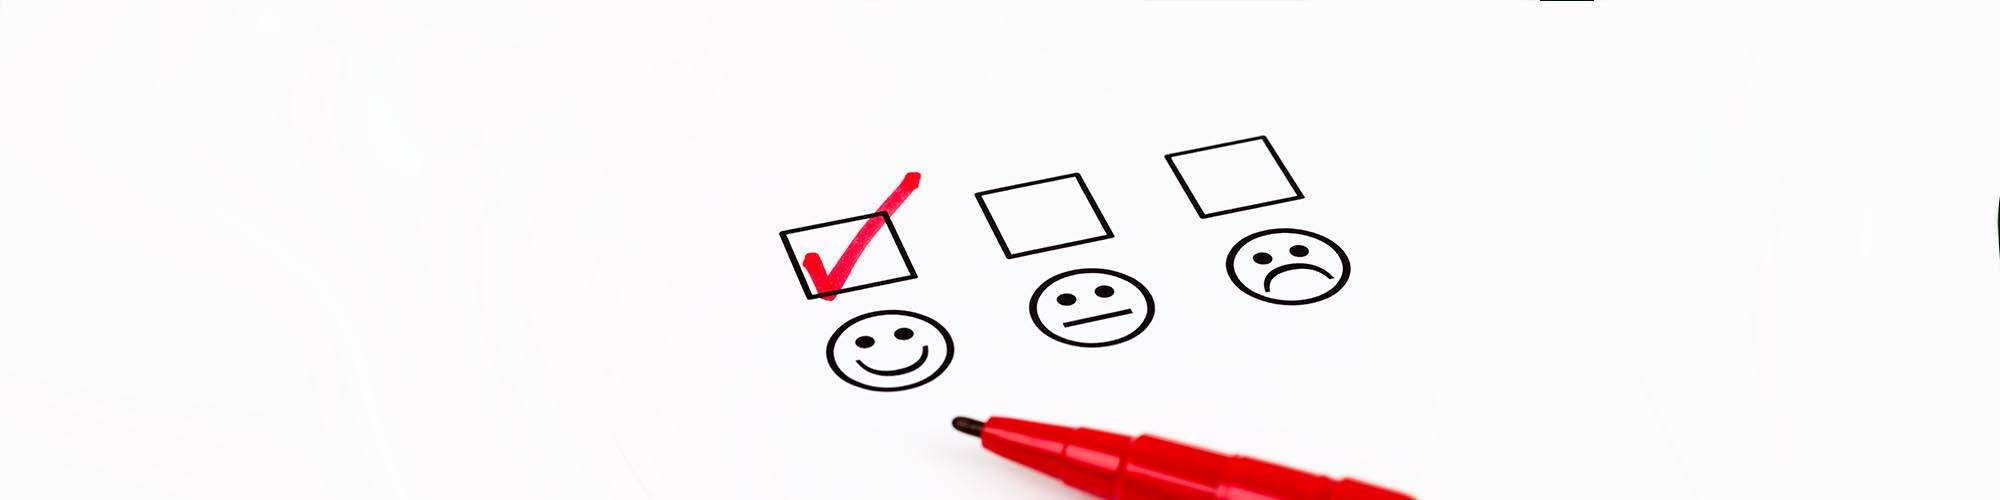 testimonials-smiley-face-option-review-icons